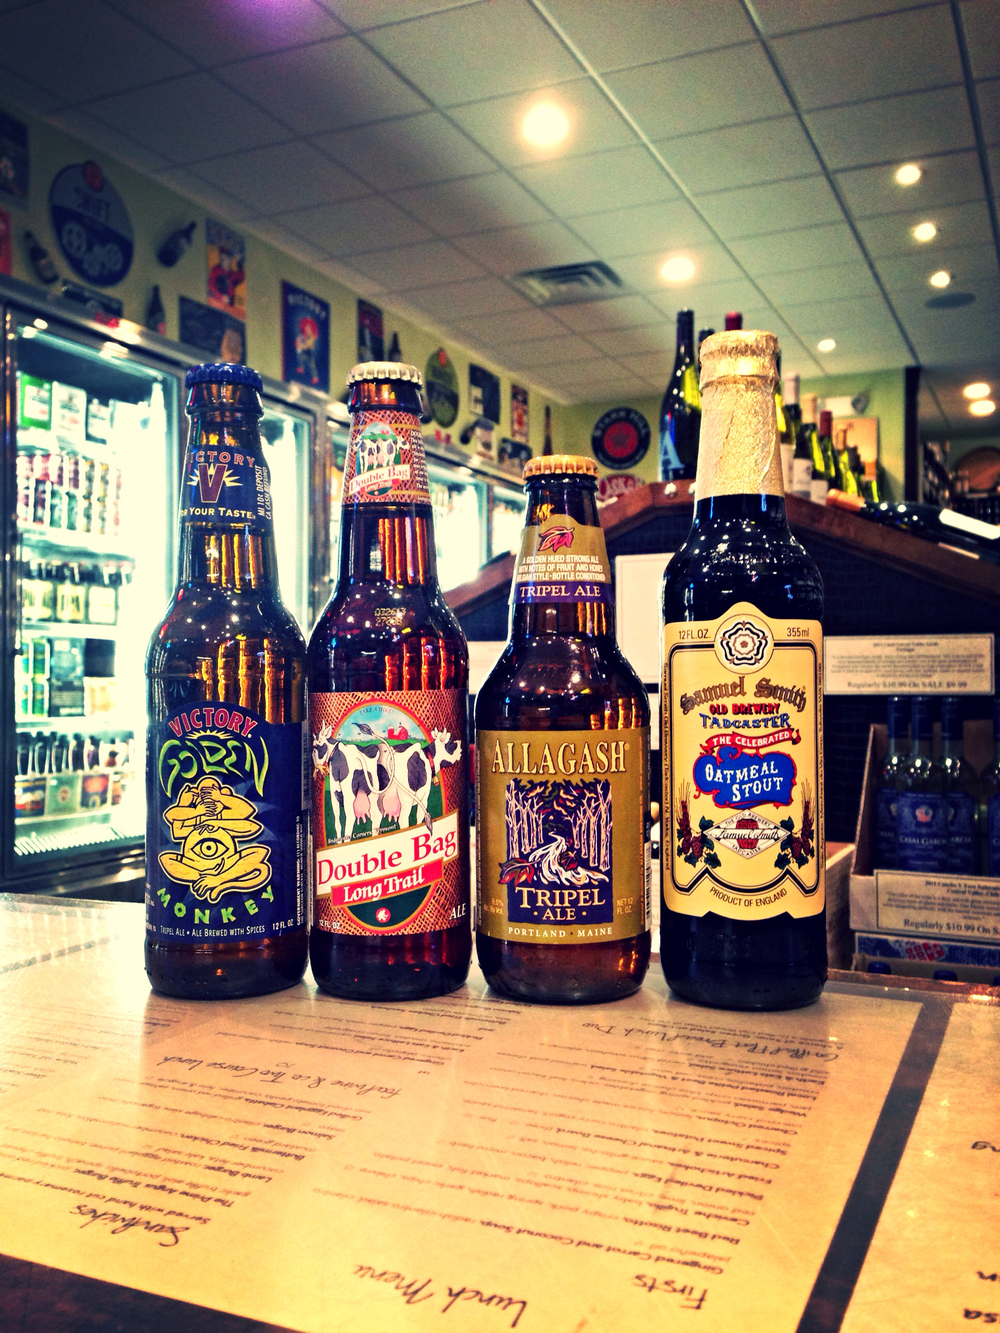 Victory Golden Monkey, Long Trail Double Bag, Allagash Tripel, and Samuel Smith's Oatmeal Stout